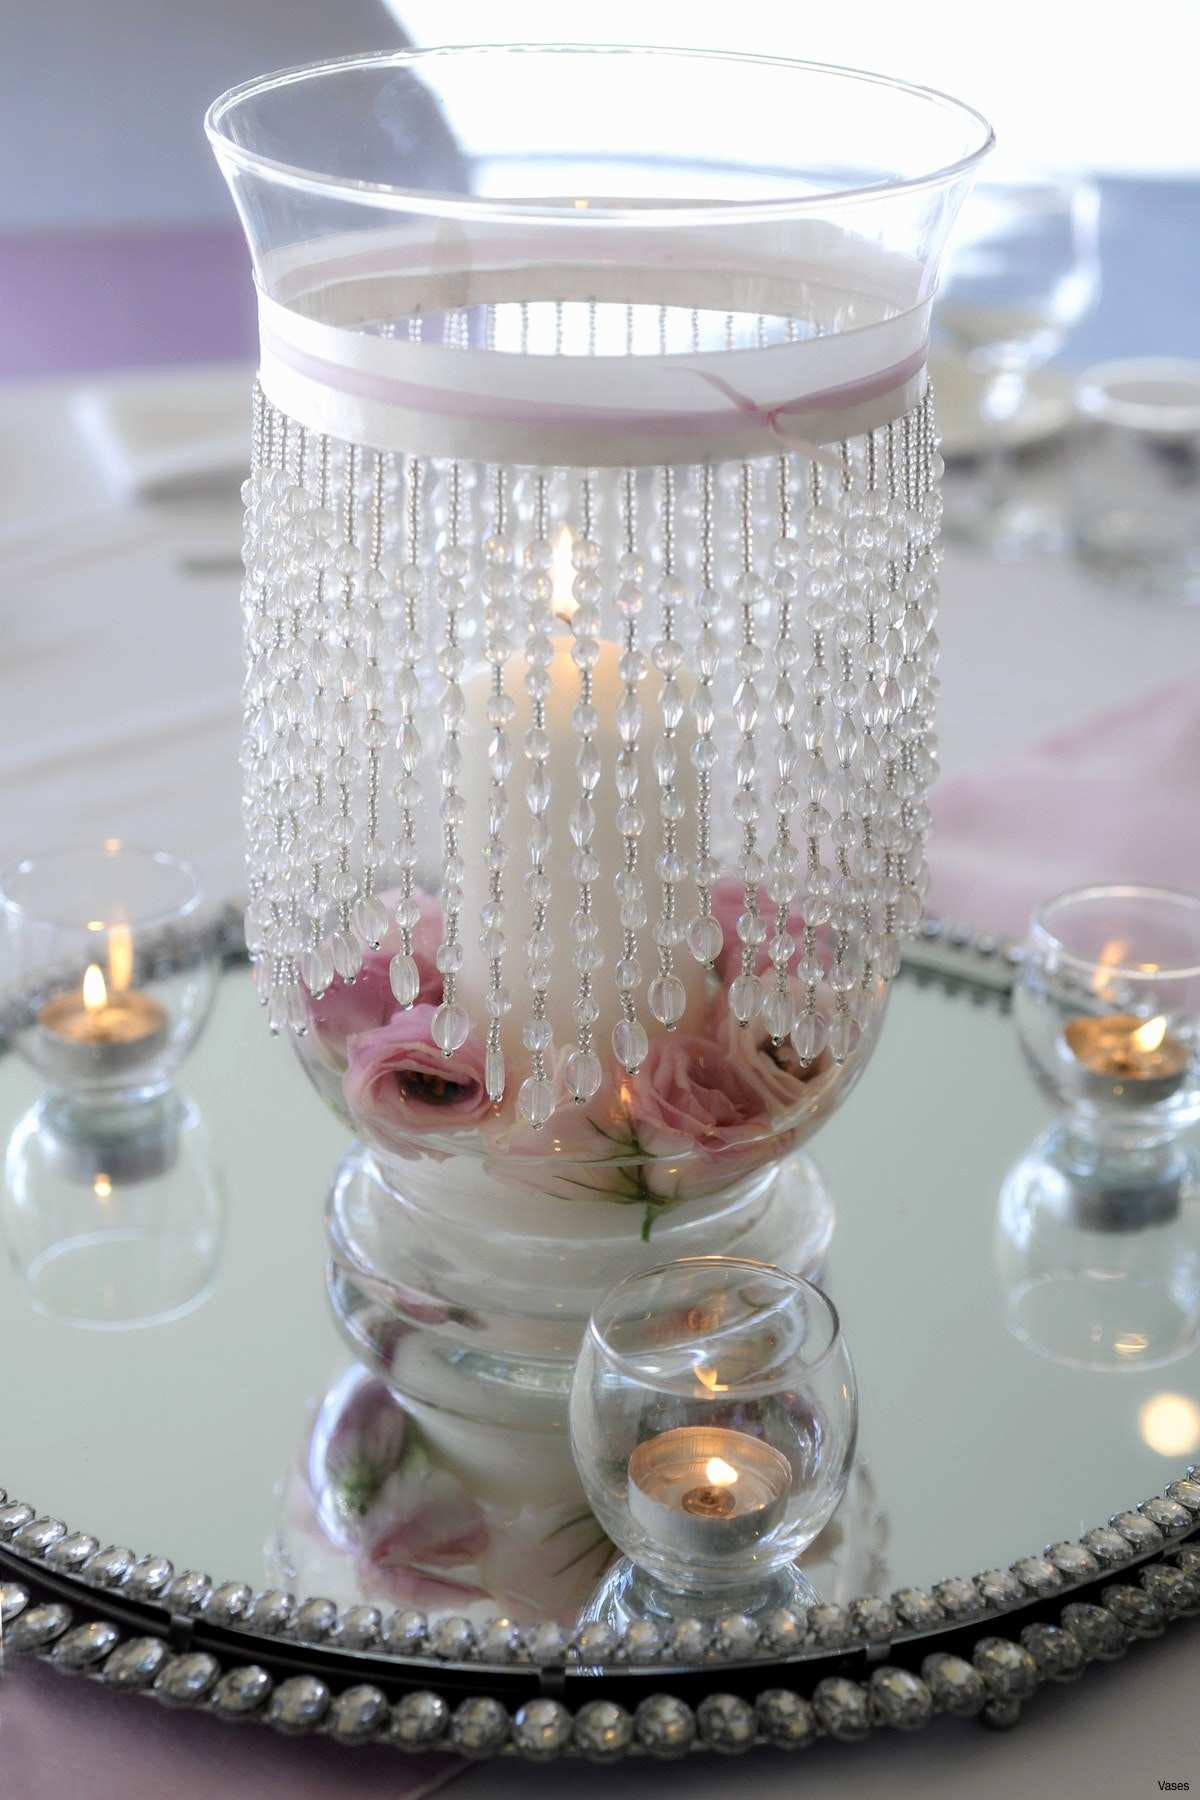 clear fish bowl vase of 26 luxury wedding centerpieces ideas sokitchenlv for centerpieces weddings awesome wedding centerpieces vases glassh for